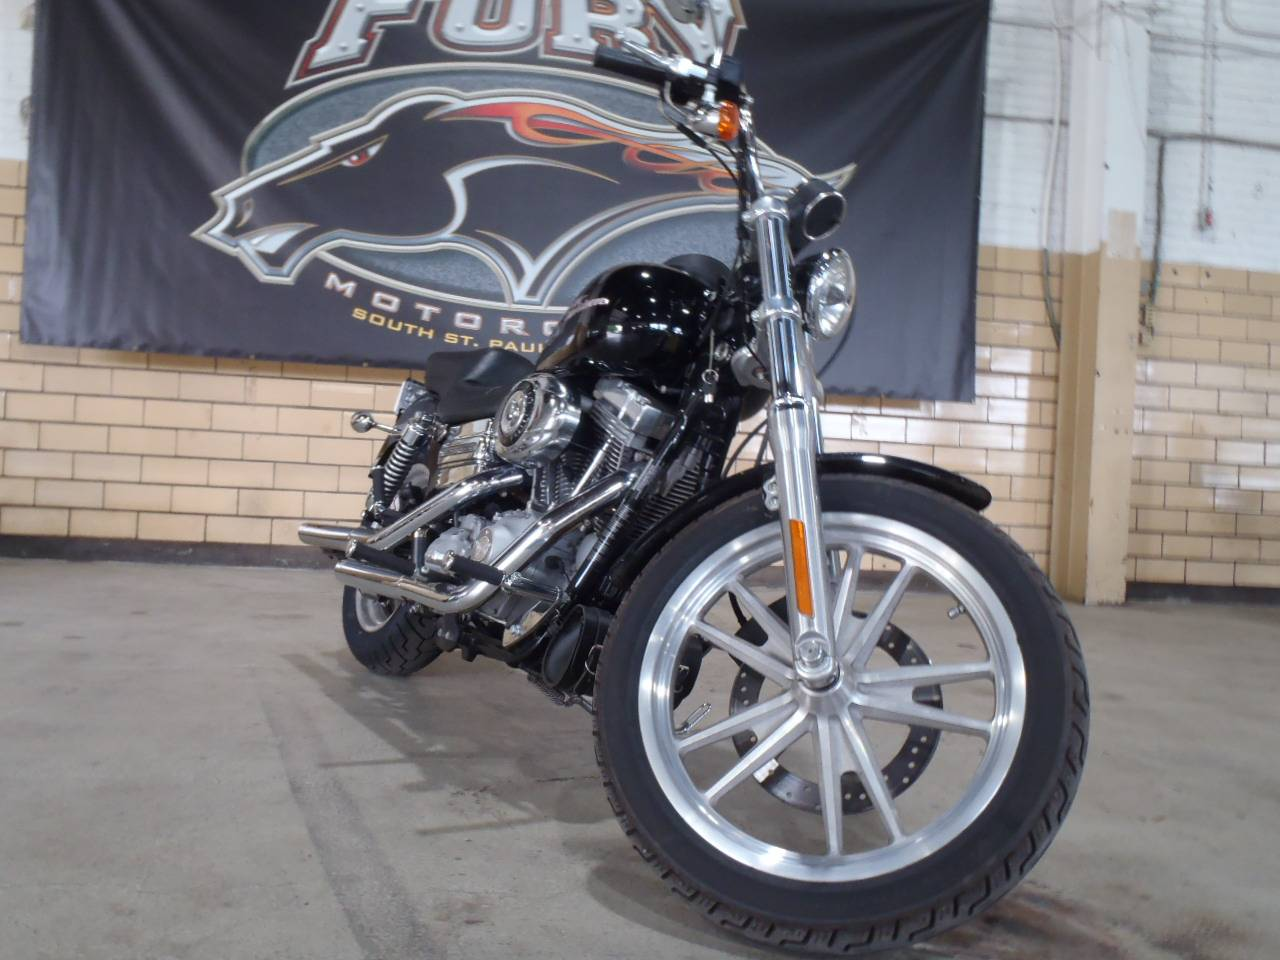 2007 Harley-Davidson Dyna® Super Glide® in South Saint Paul, Minnesota - Photo 9